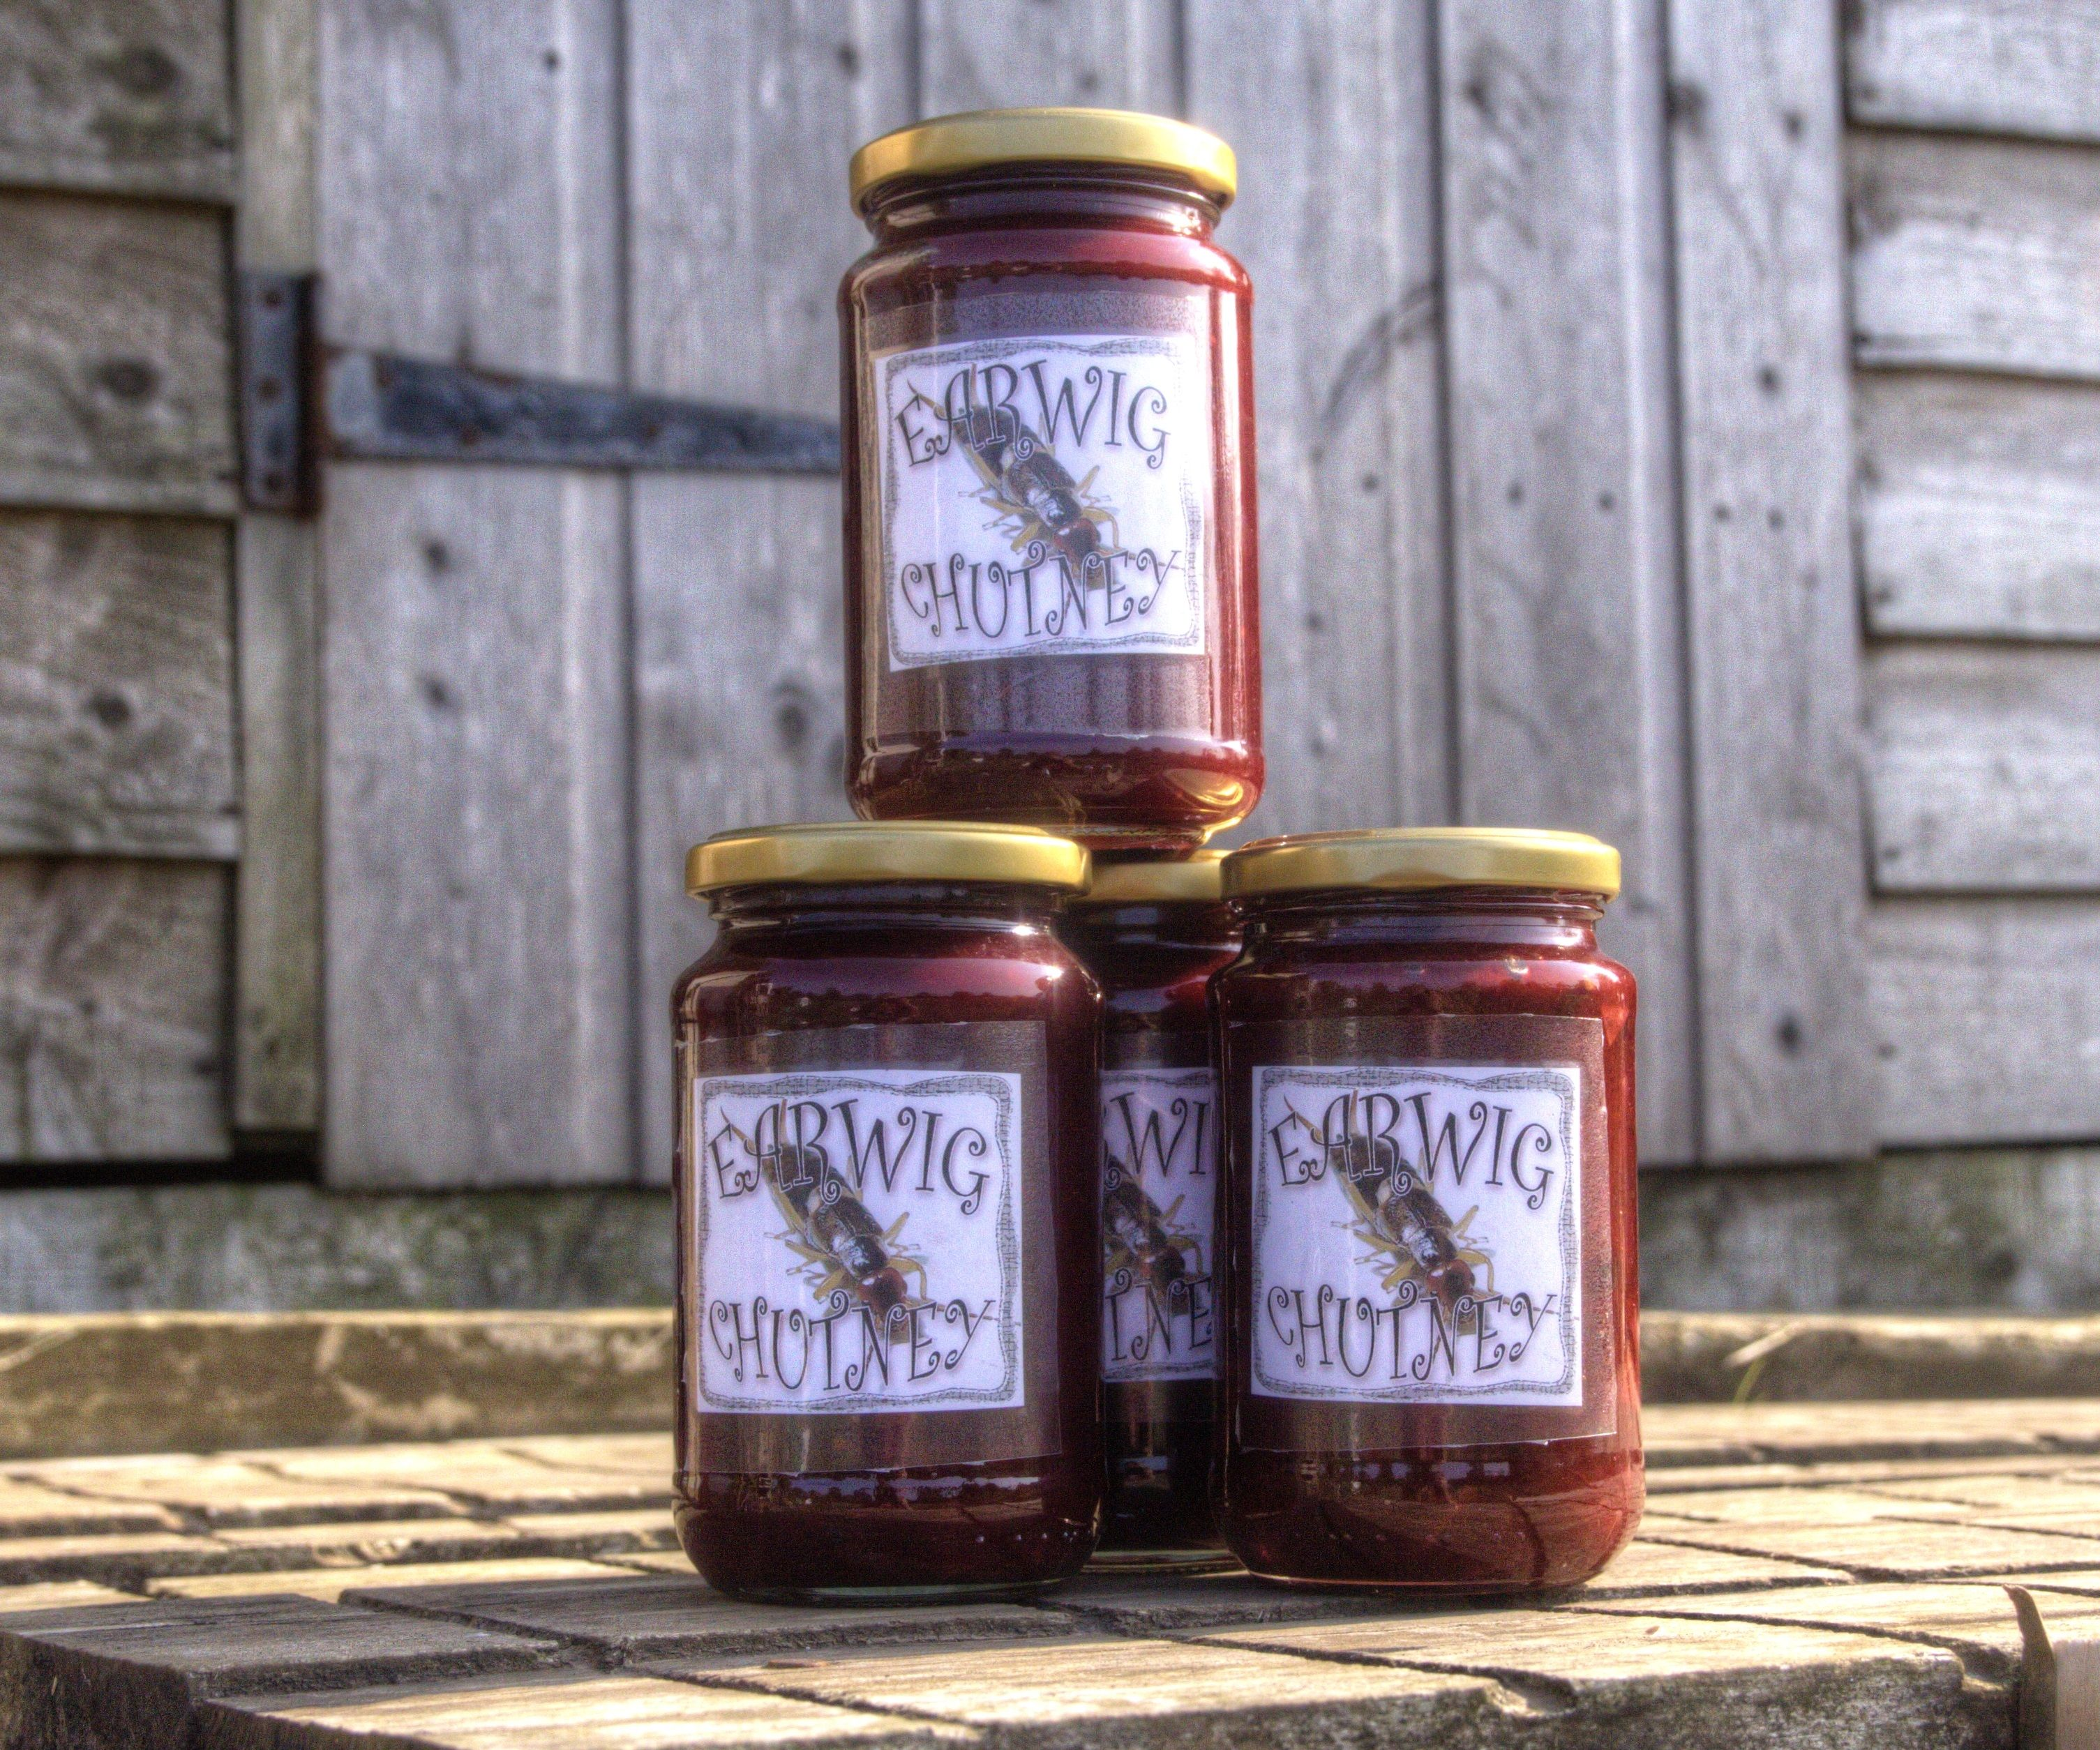 Earwig Chutney - A Grandmother's Confession